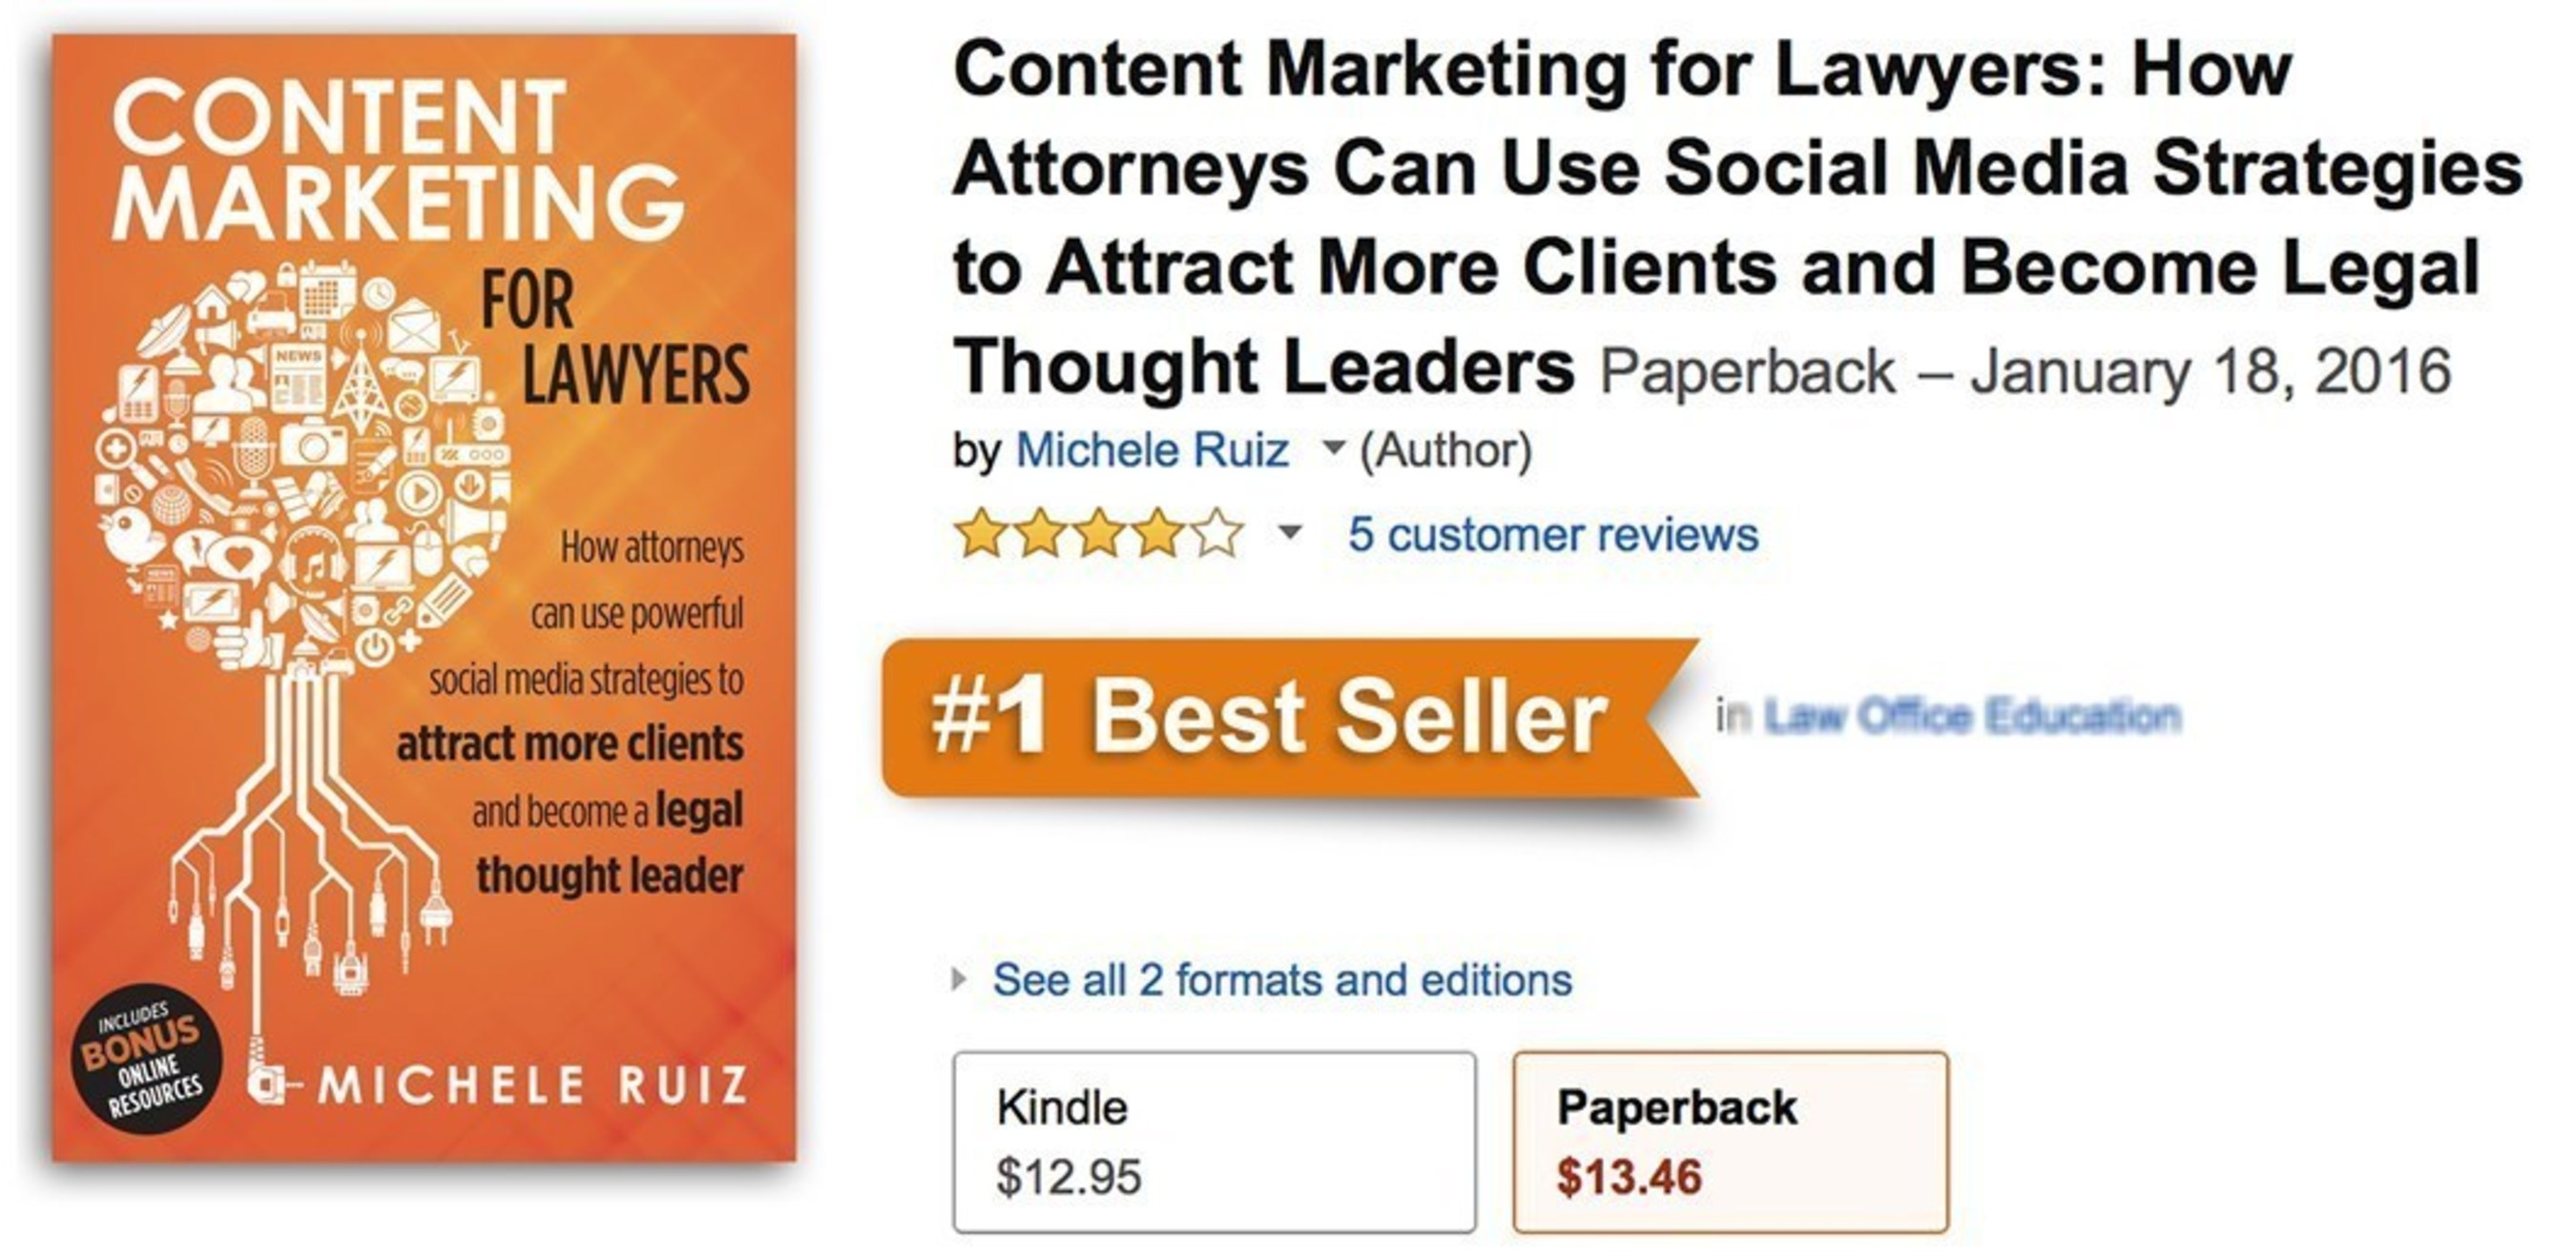 The Legal Marketing Book Content Marketing for Lawyers - How Attorneys Can Use Powerful Social Media Strategies to Attract More Clients and Become Legal Thought Leaders by Michele Ruiz is a Best Seller.